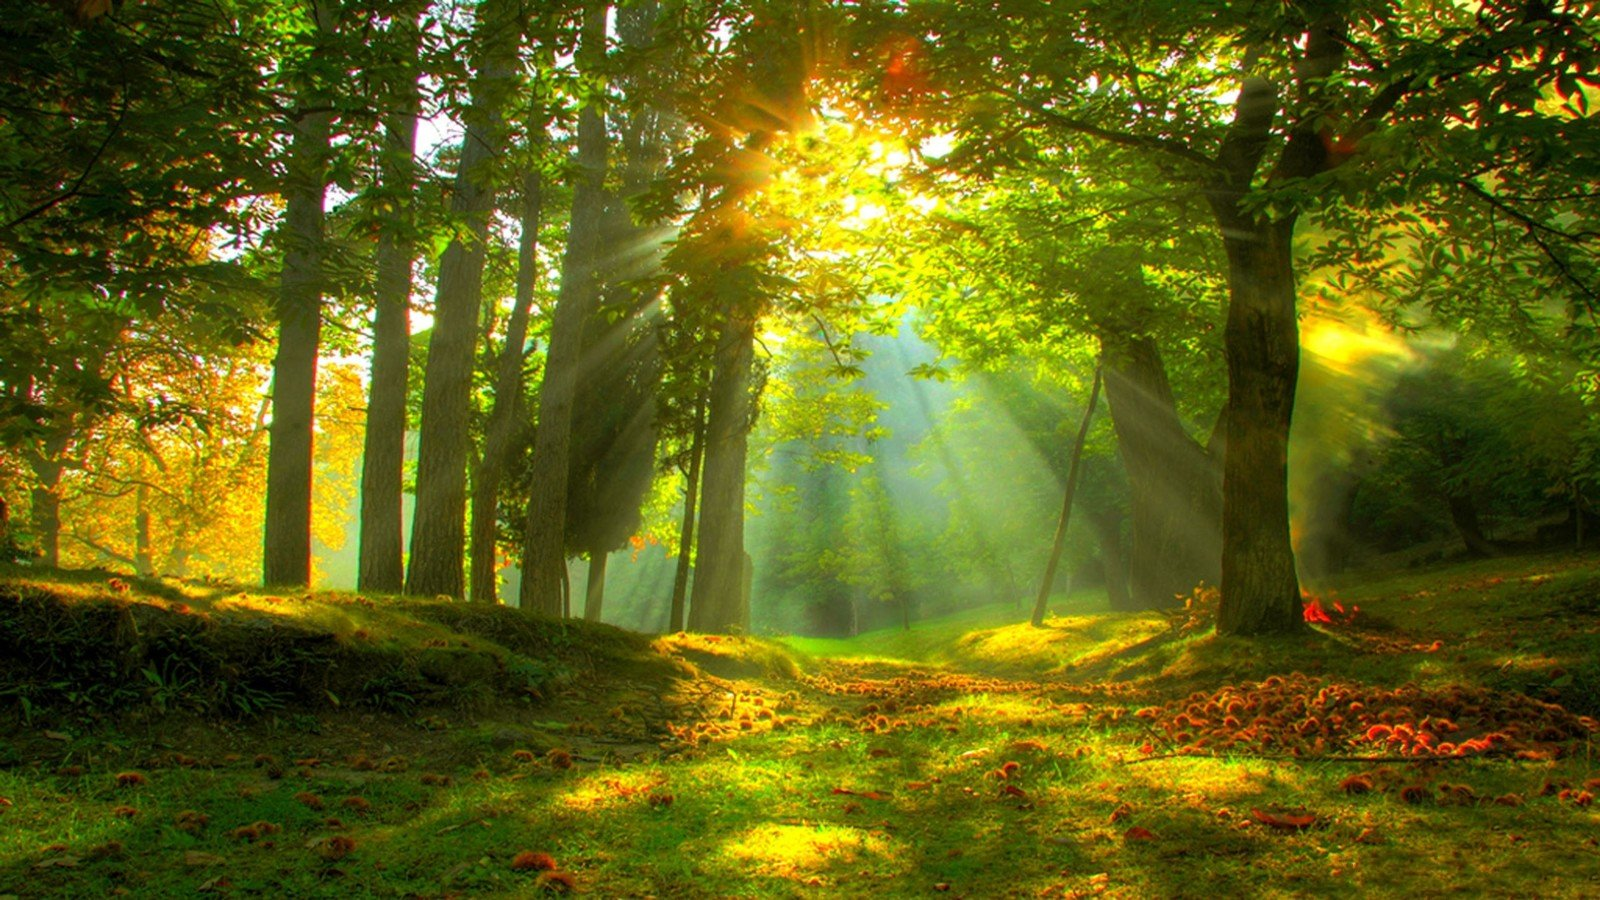 Earth - Forest  Sunlight Sunshine Earth Sunbeam Sun Tree Fall Wallpaper